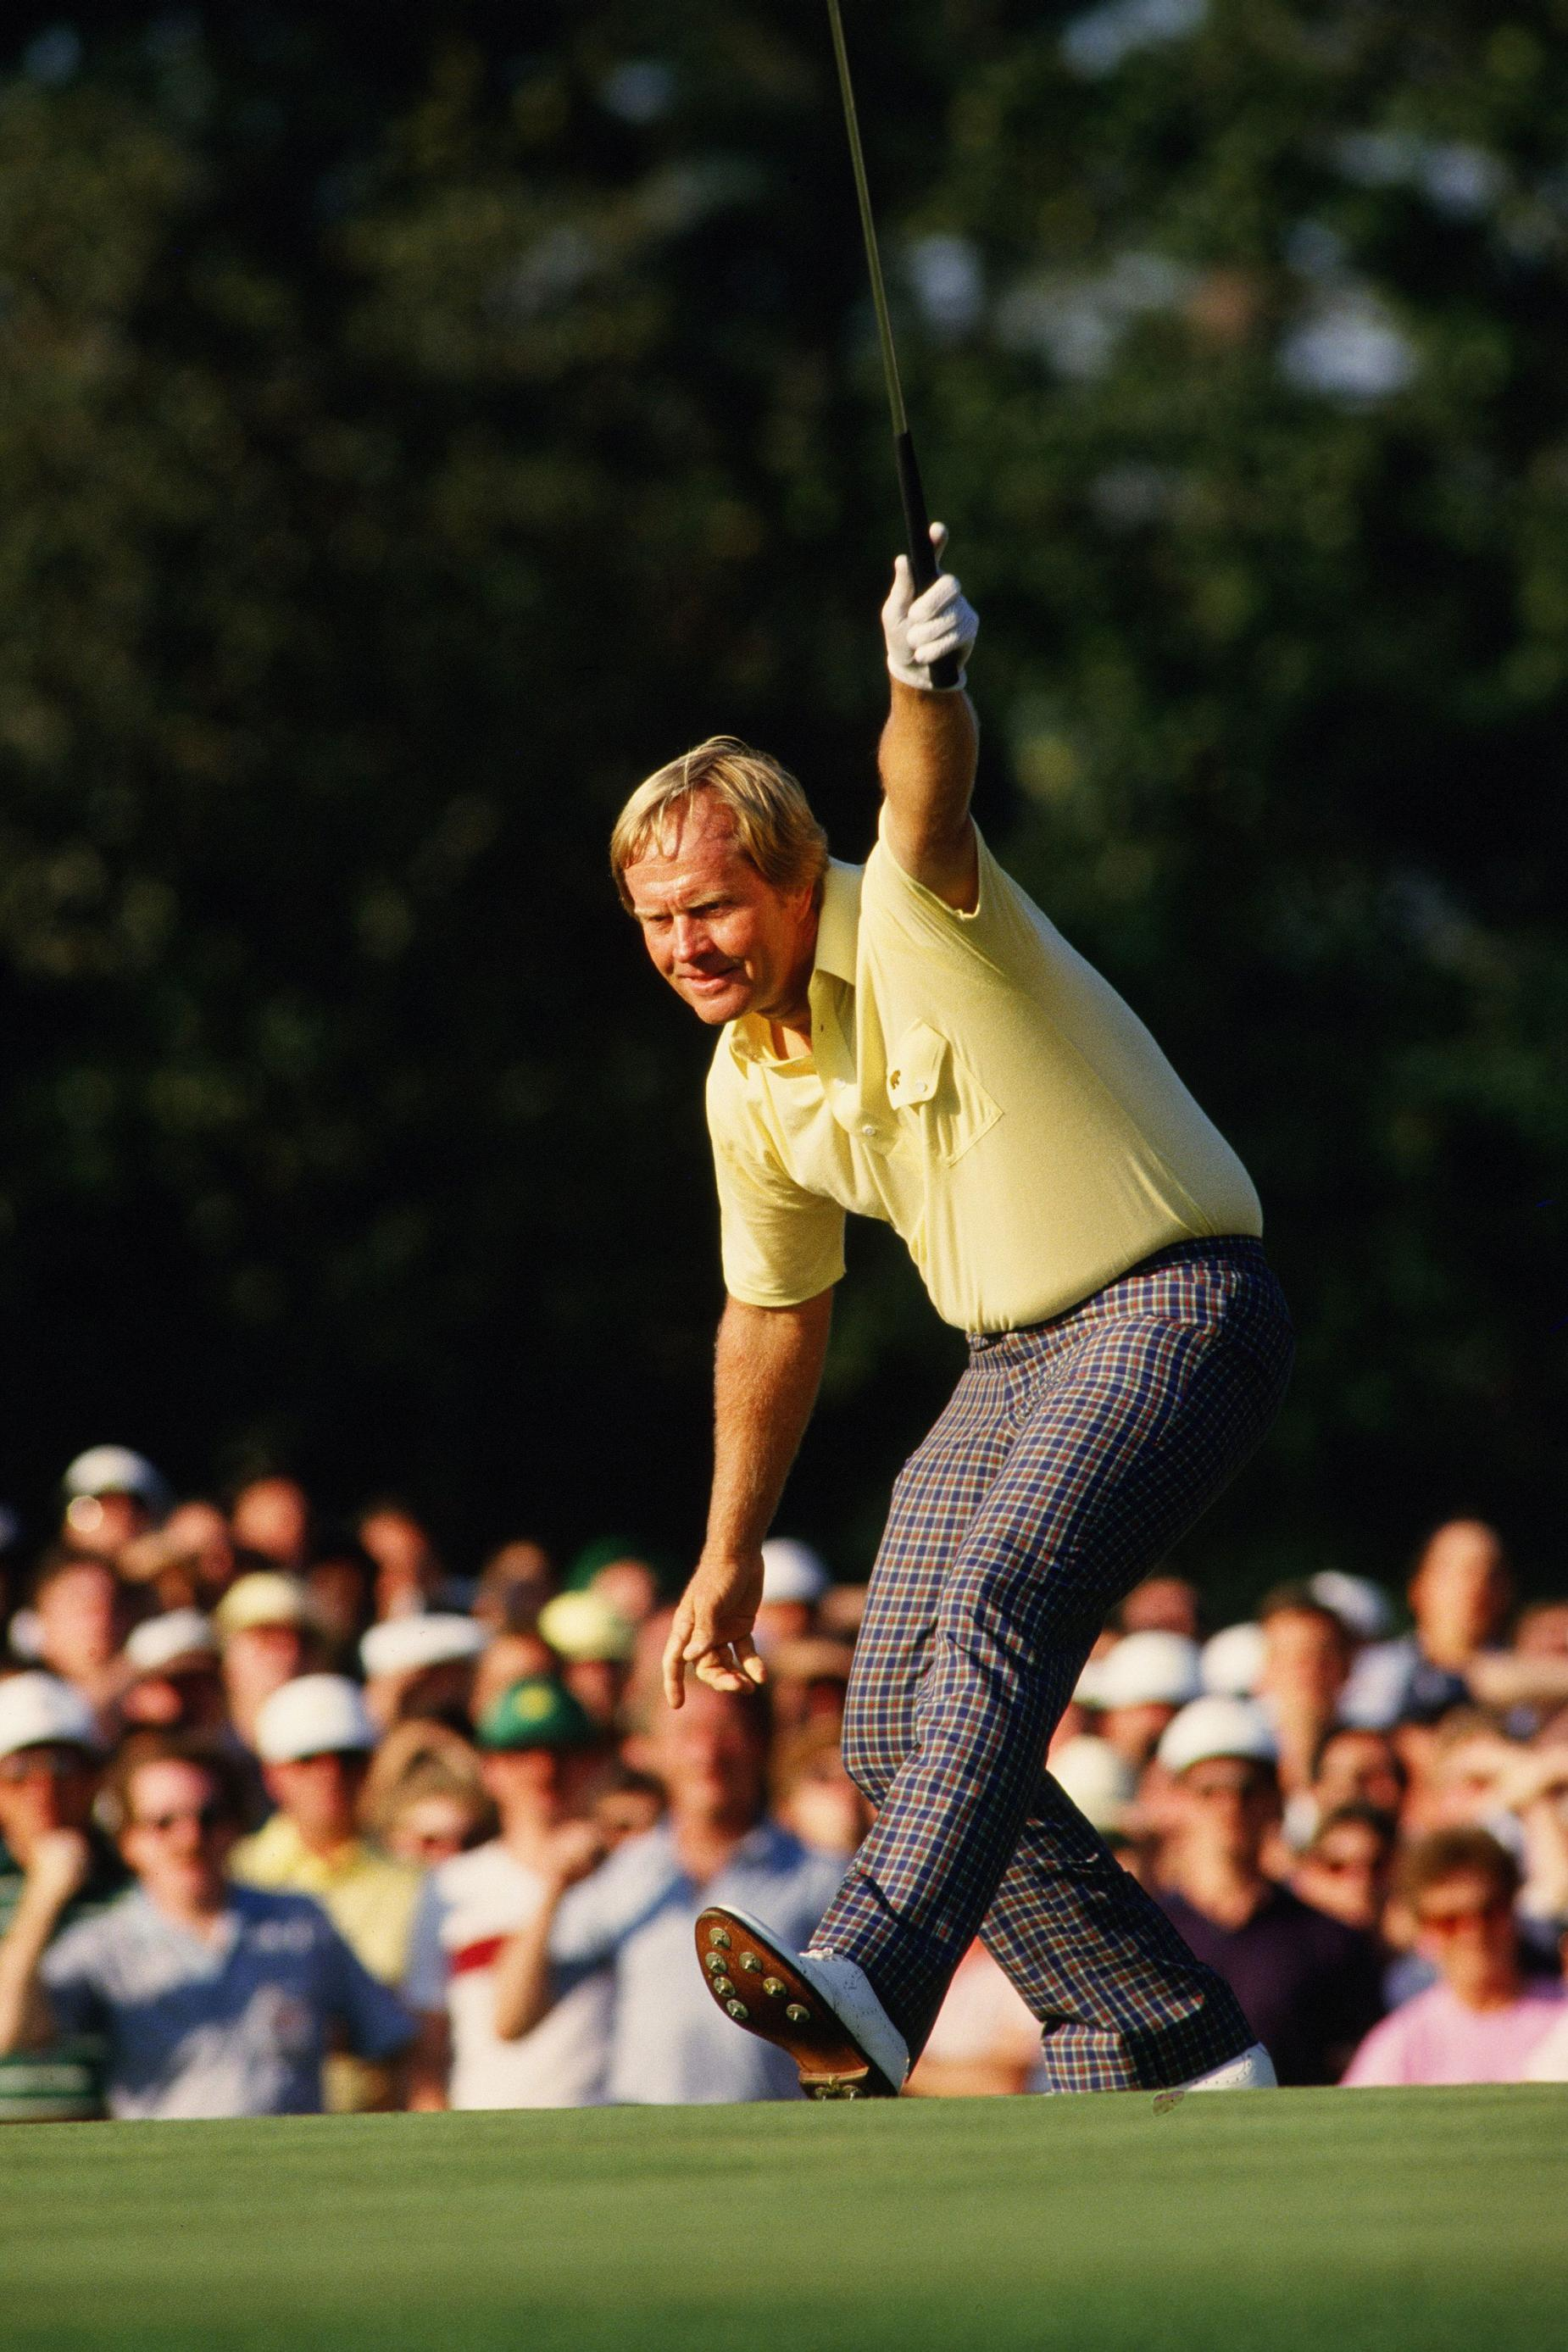 jack-nicklaus-1986-masters-17th-hole-yes-sir-putt.jpg